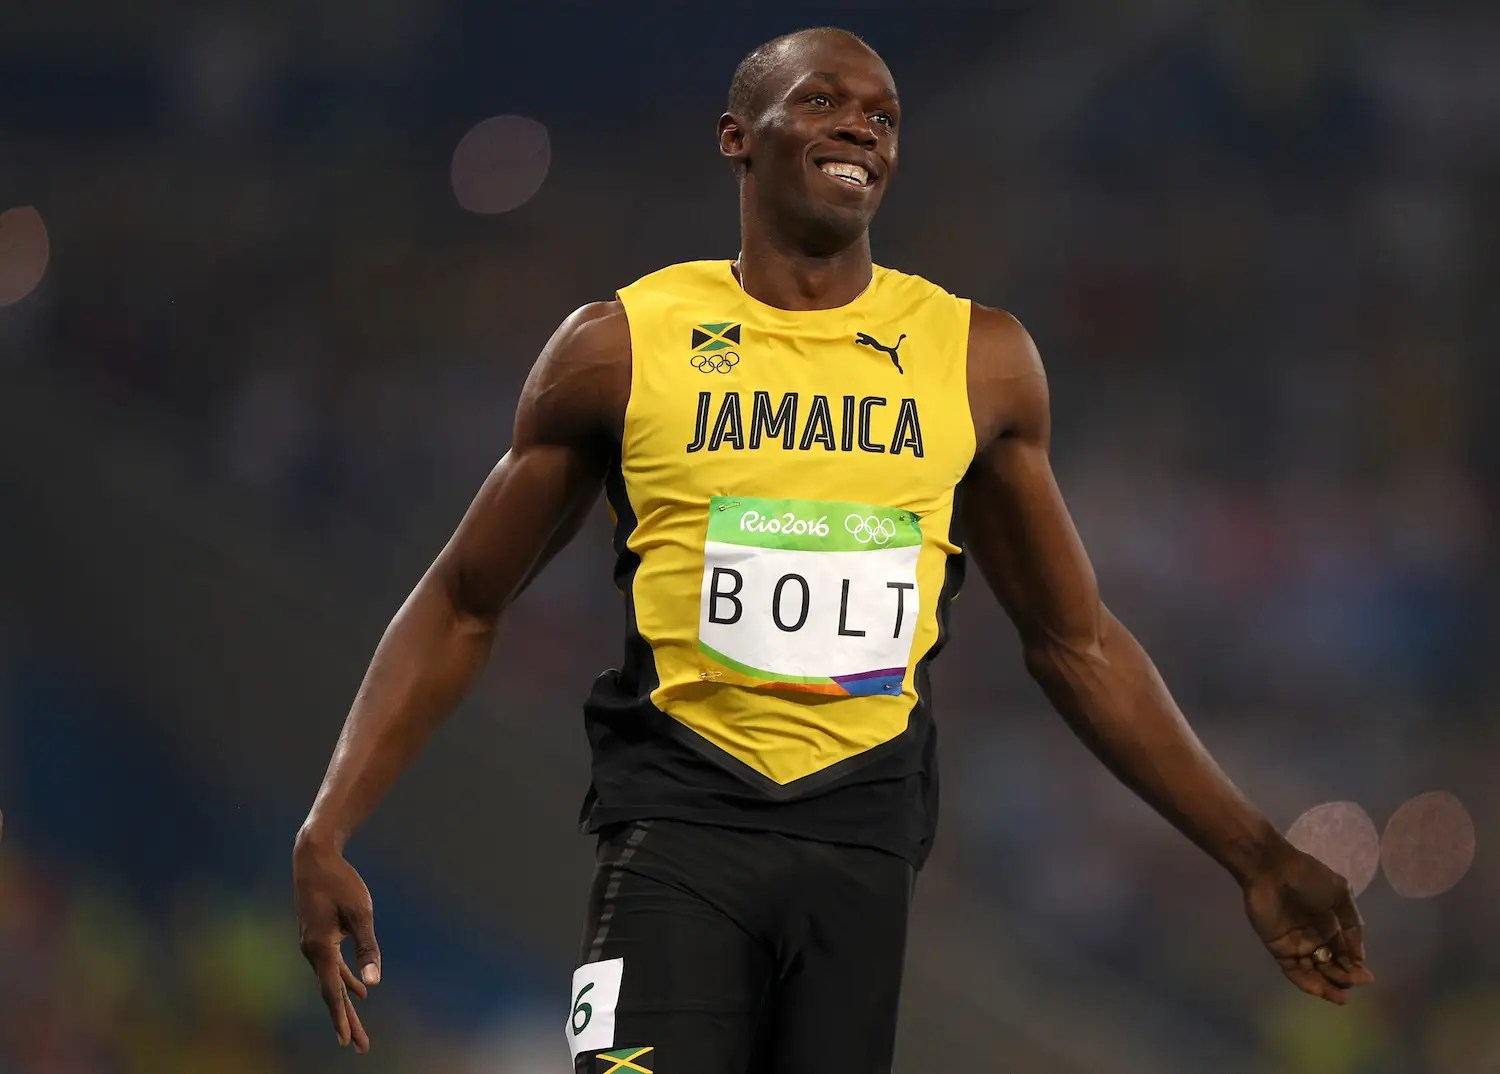 Usain Bolt wins 100m becomes first sprinter to win the